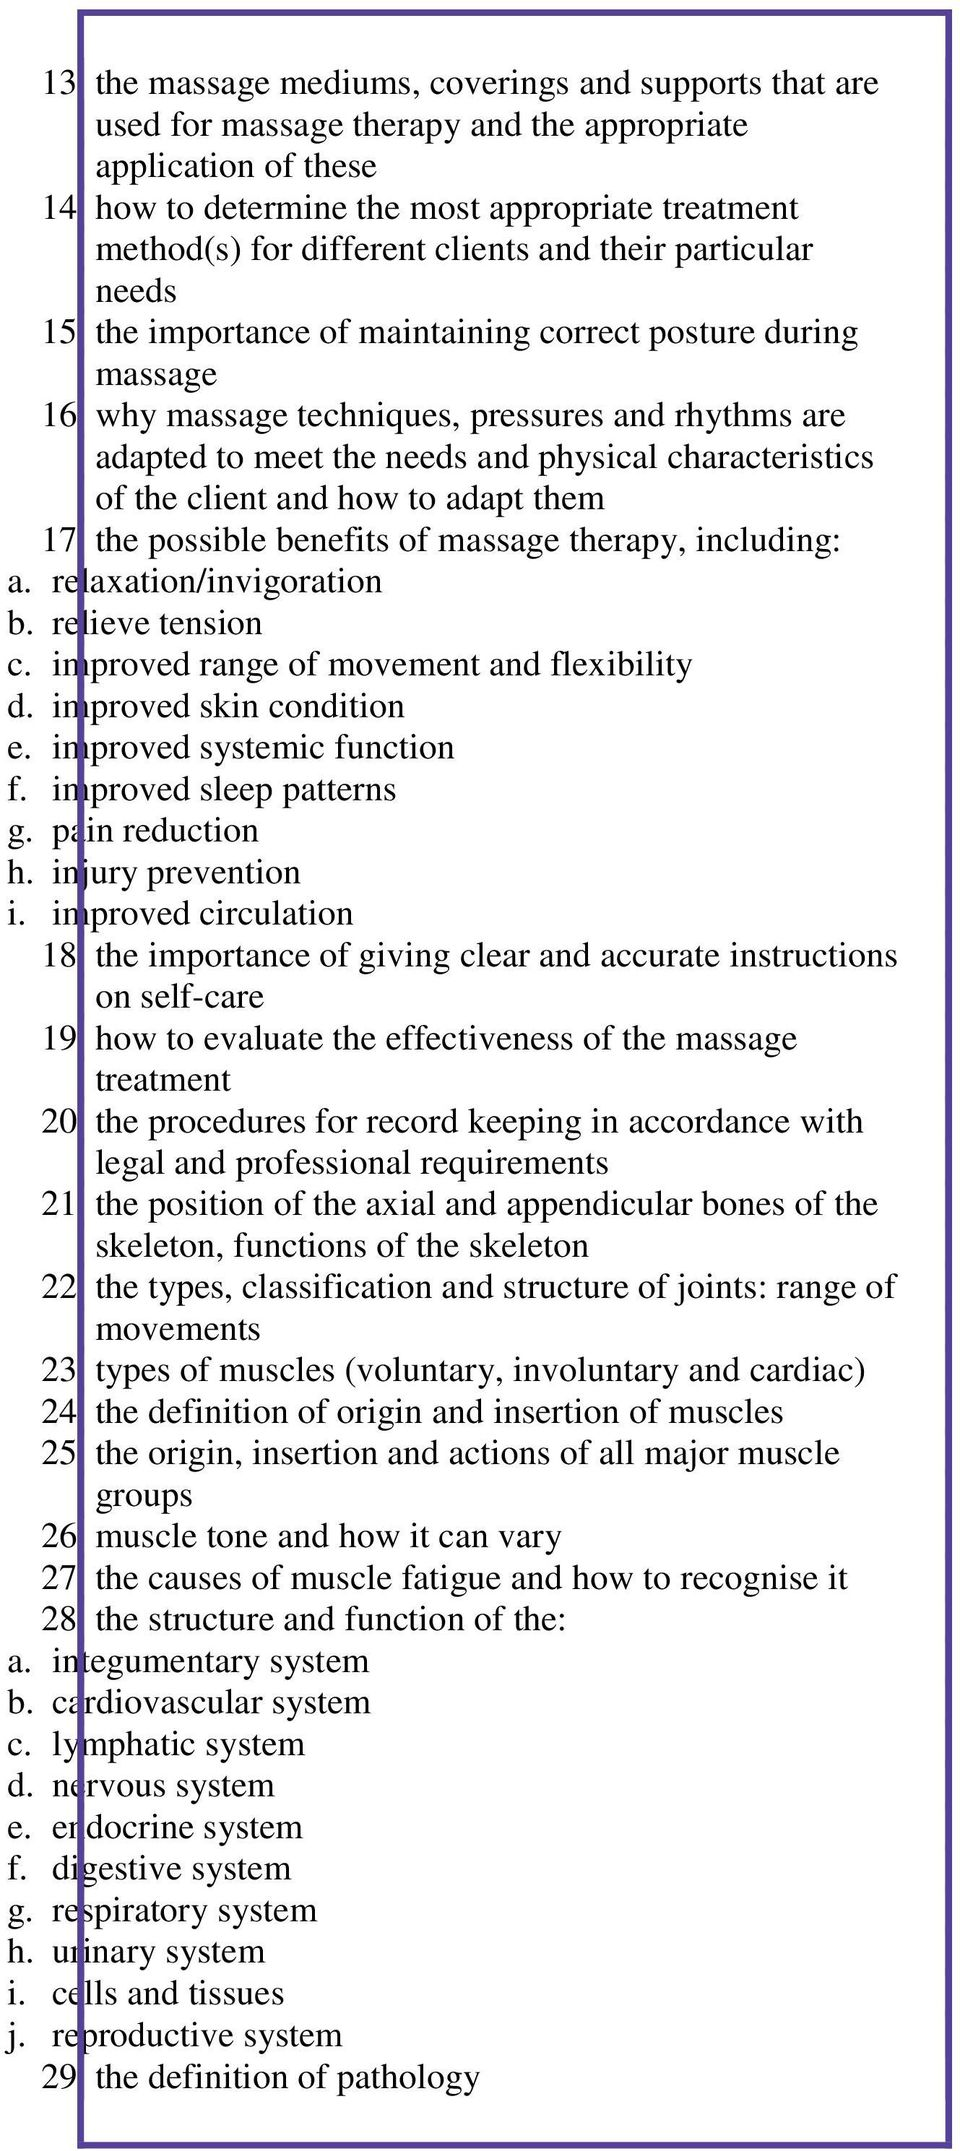 why massage techniques, pressures and rhythms are adapted to meet the needs and physical characteristics of the client and how to adapt them 17. the possible benefits of massage therapy, including: a.